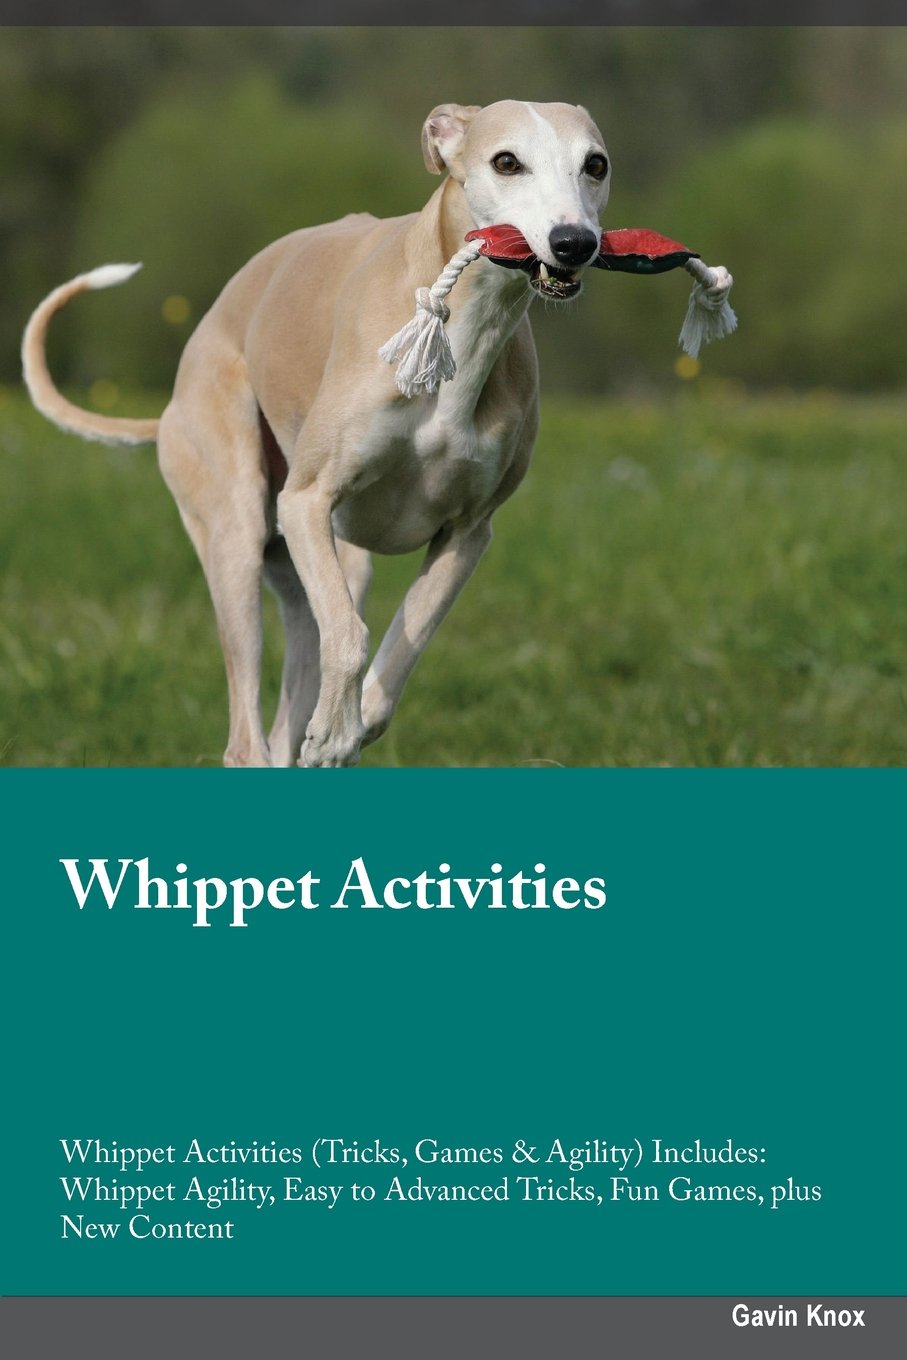 Download Whippet Activities Whippet Activities (Tricks, Games & Agility) Includes: Whippet Agility, Easy to Advanced Tricks, Fun Games, plus New Content pdf epub